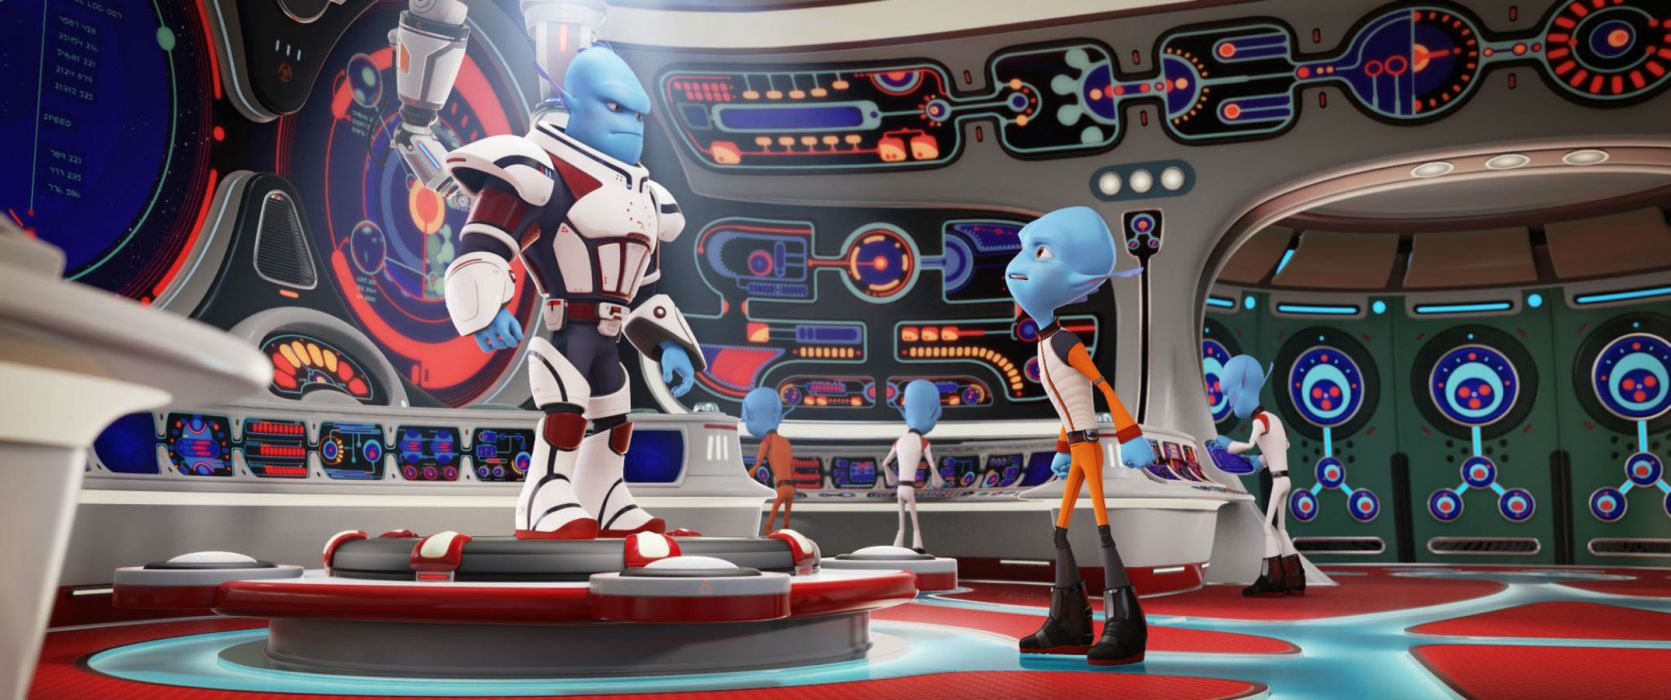 Escape From Planet Earth cartoon animation sci-fi movies       r wallpaper